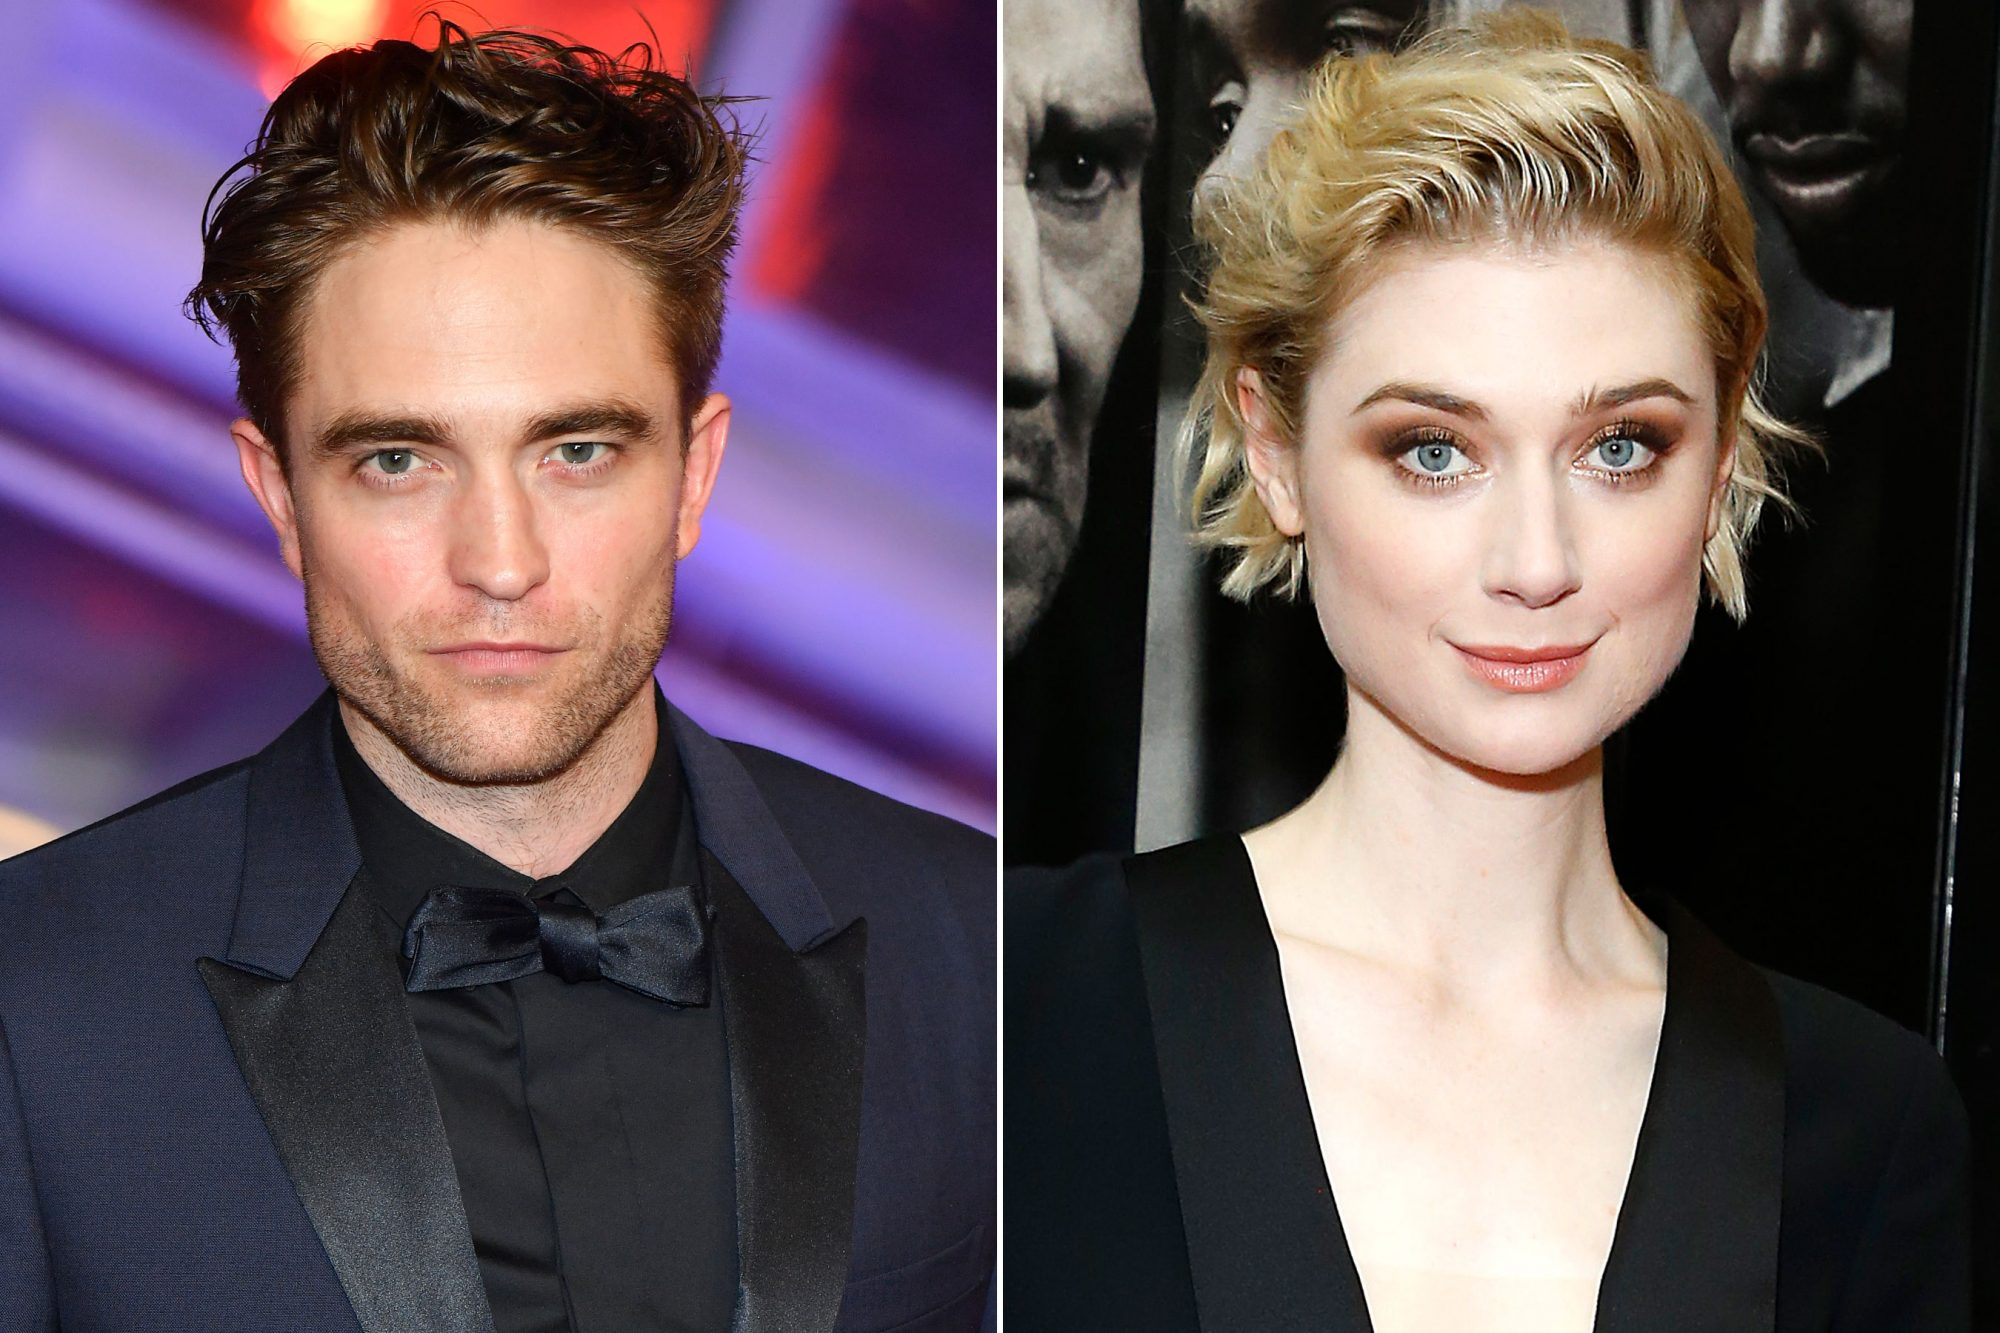 Pattinson-debicki